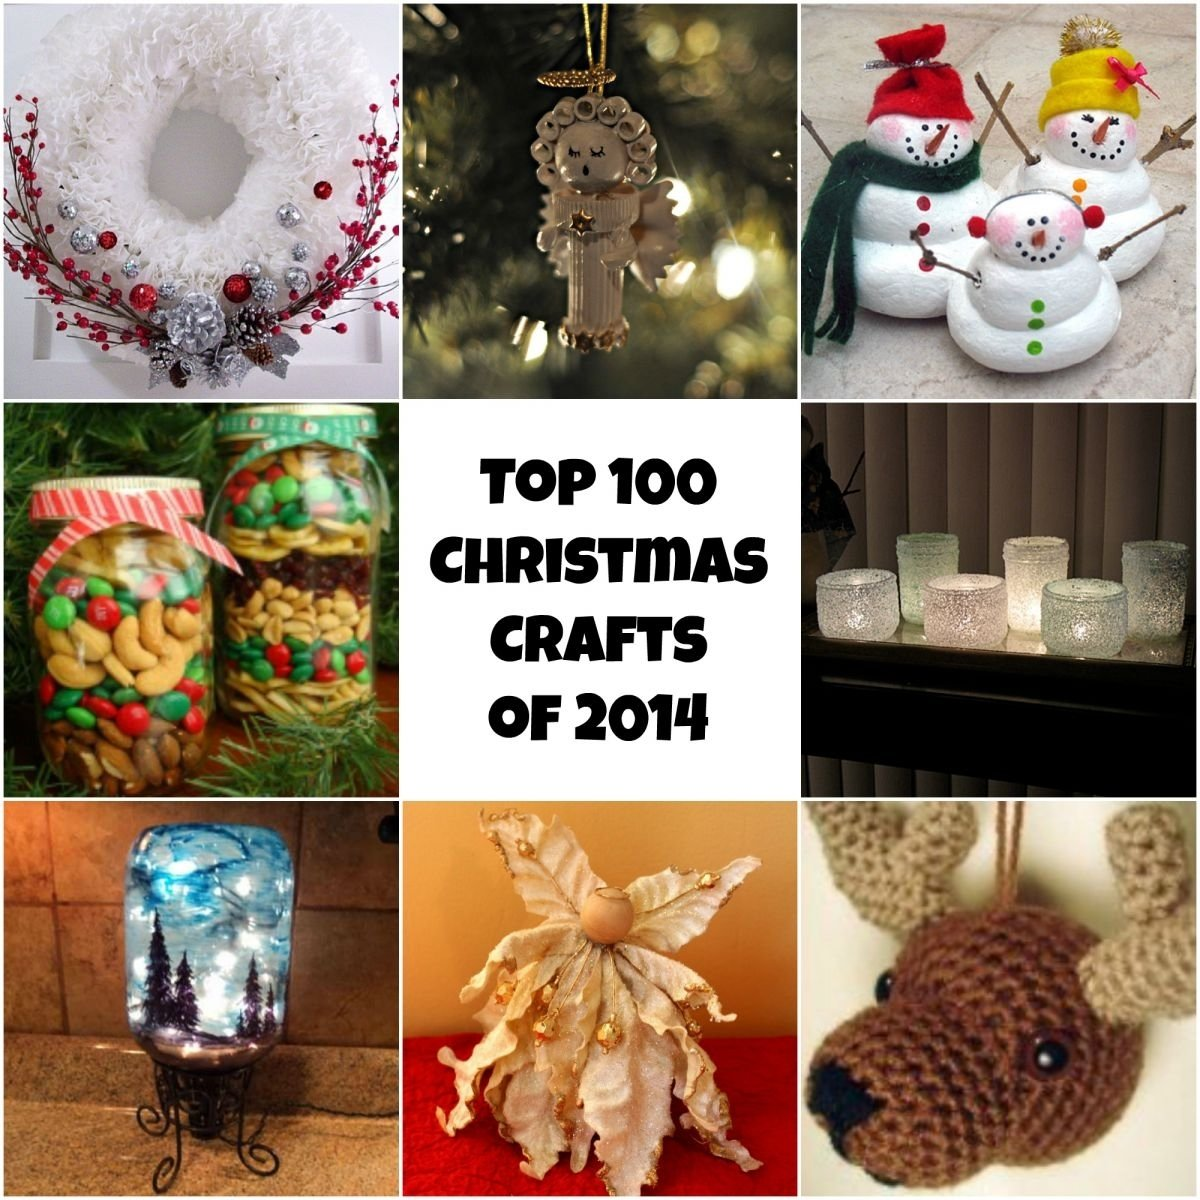 10 Stunning Ideas For Homemade Christmas Gifts top 100 diy christmas crafts of 2014 homemade christmas ornaments 4 2020